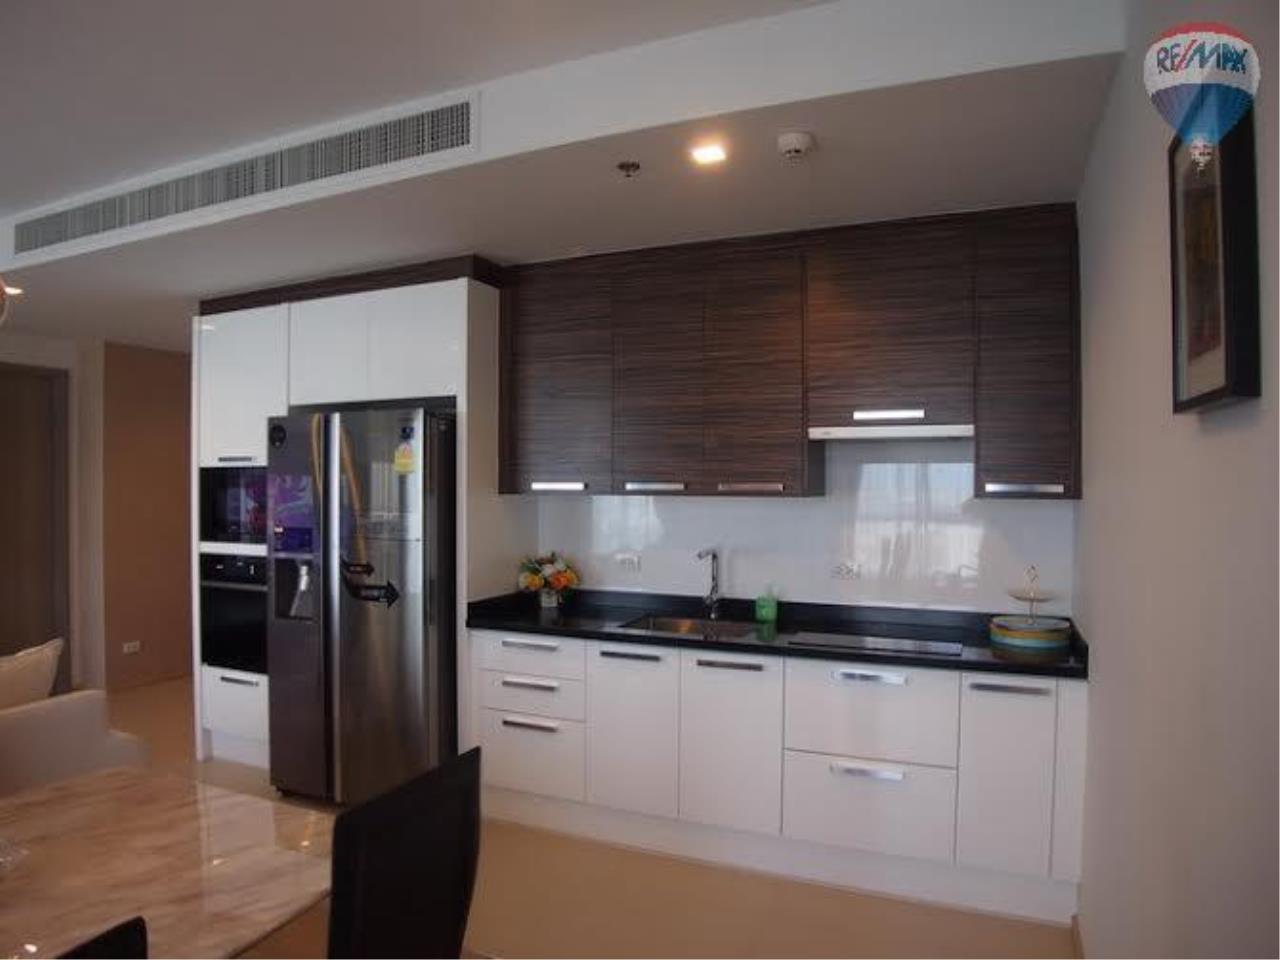 RE/MAX Properties Agency's 2 Bedrooms 100 Sq.M. in HQ by Sansiri for sale 20